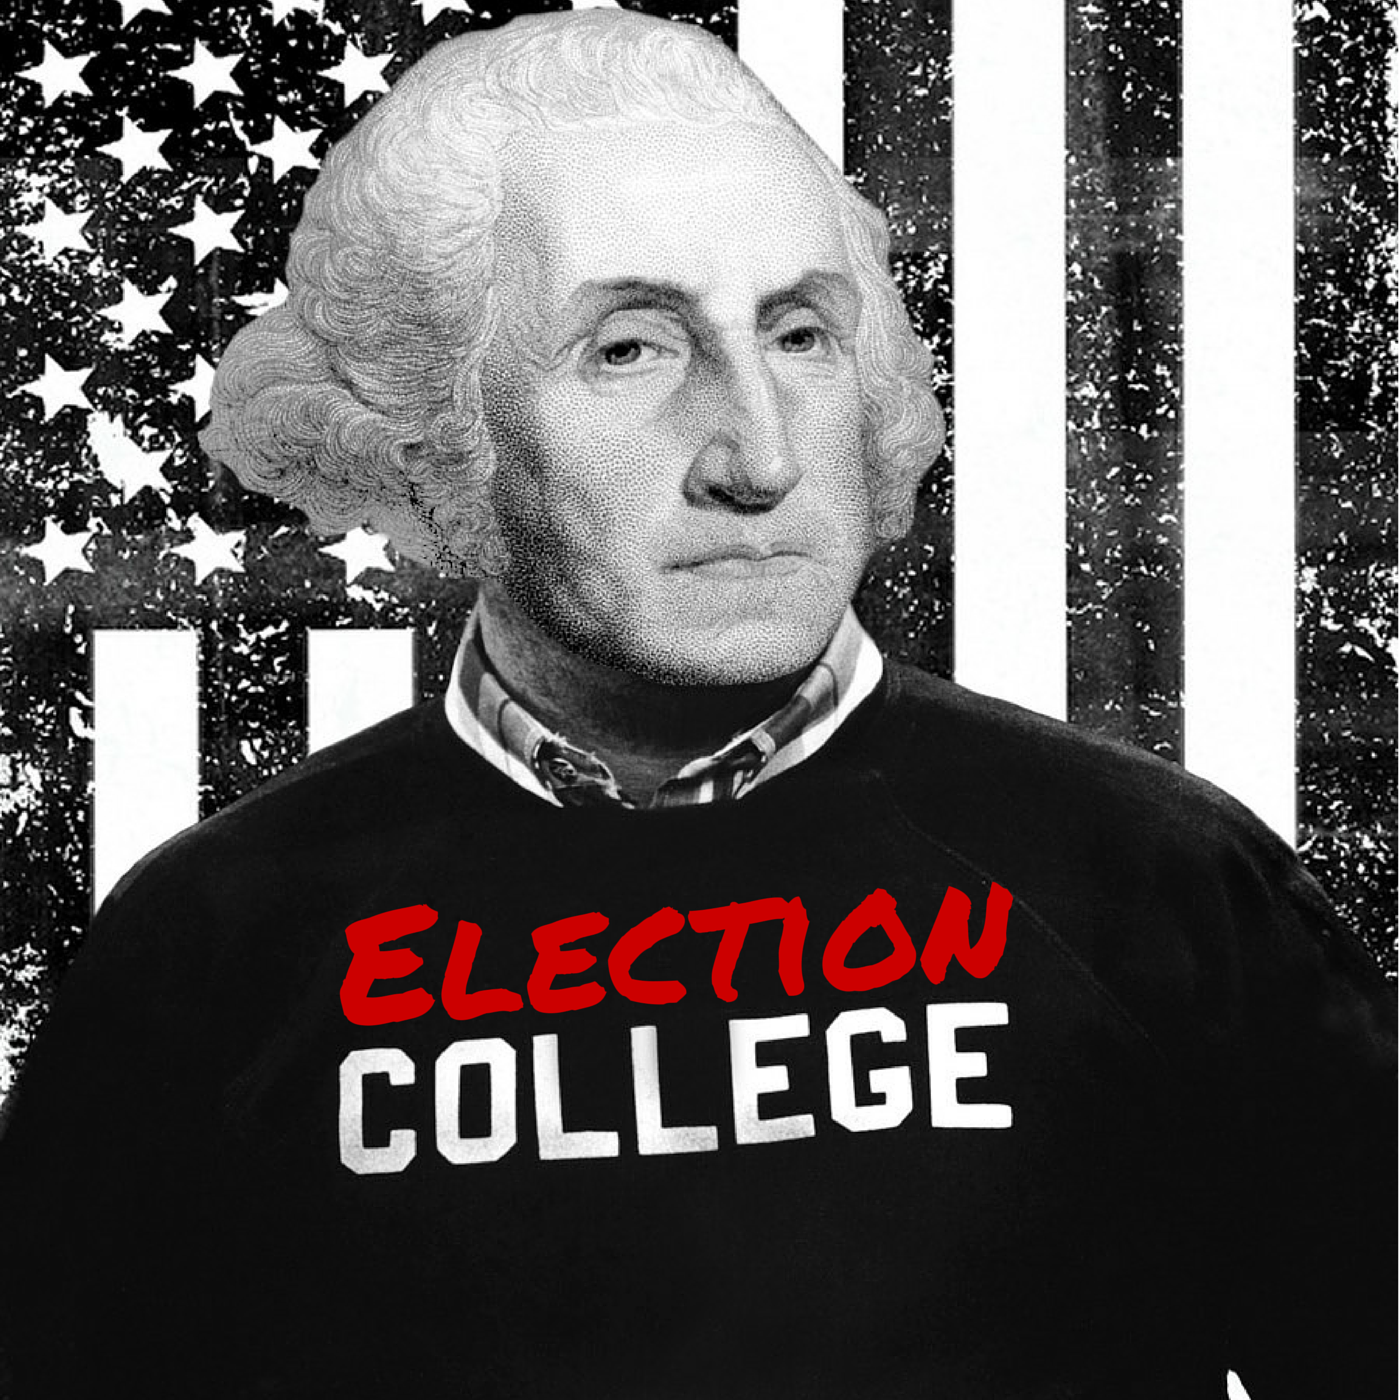 Frederick Douglass - Part 1 | Episode #167 | Election College: United States Presidential Election History